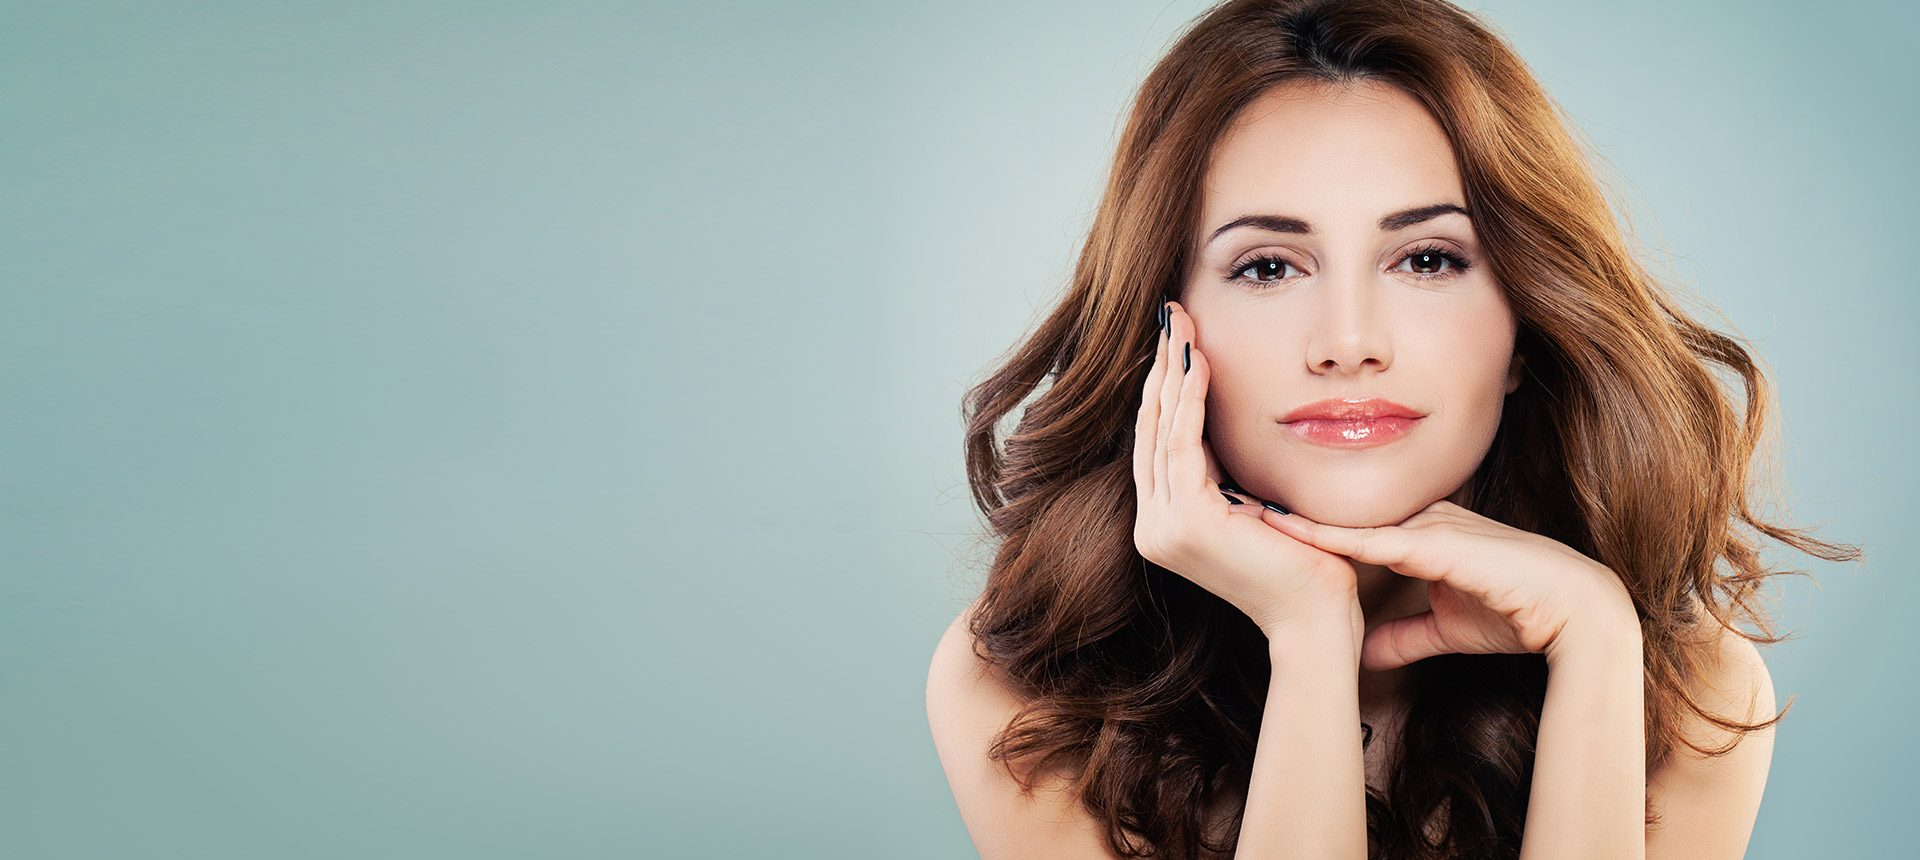 Woman poses while resting chin on hands